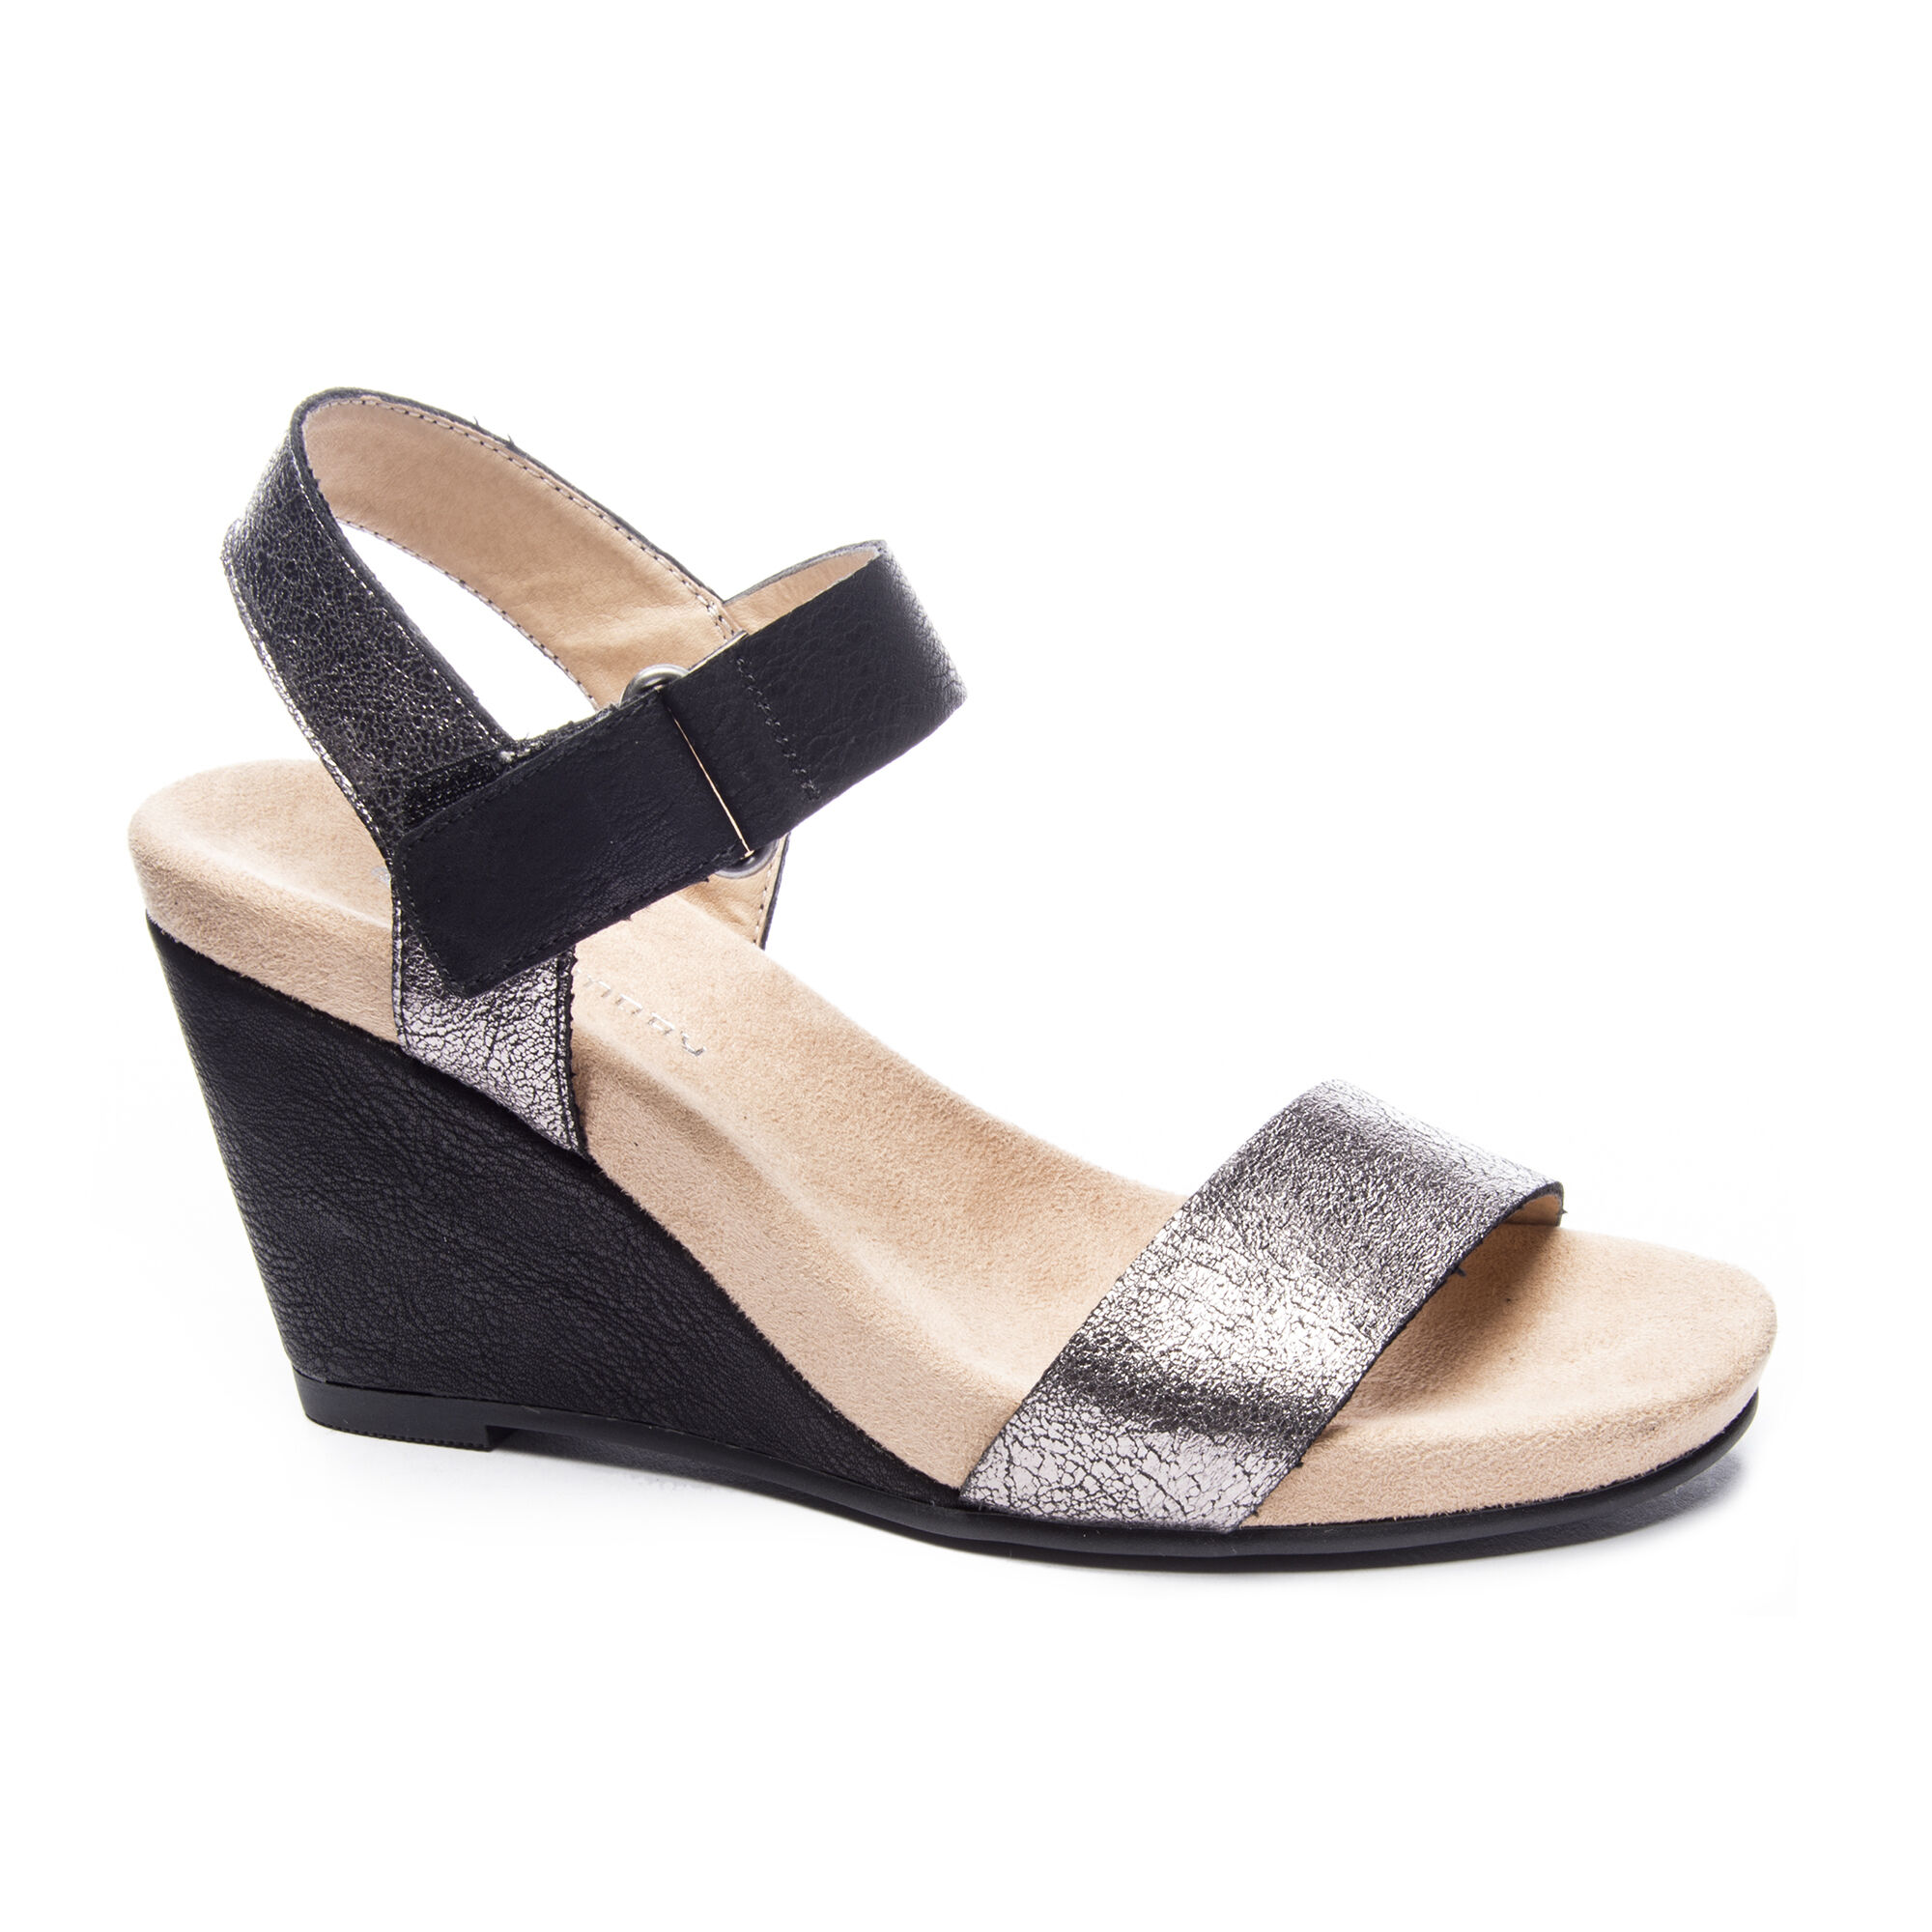 d68b6a1eba6 CL by Laundry Trudy Shimmer-Roc Wedge Sandal